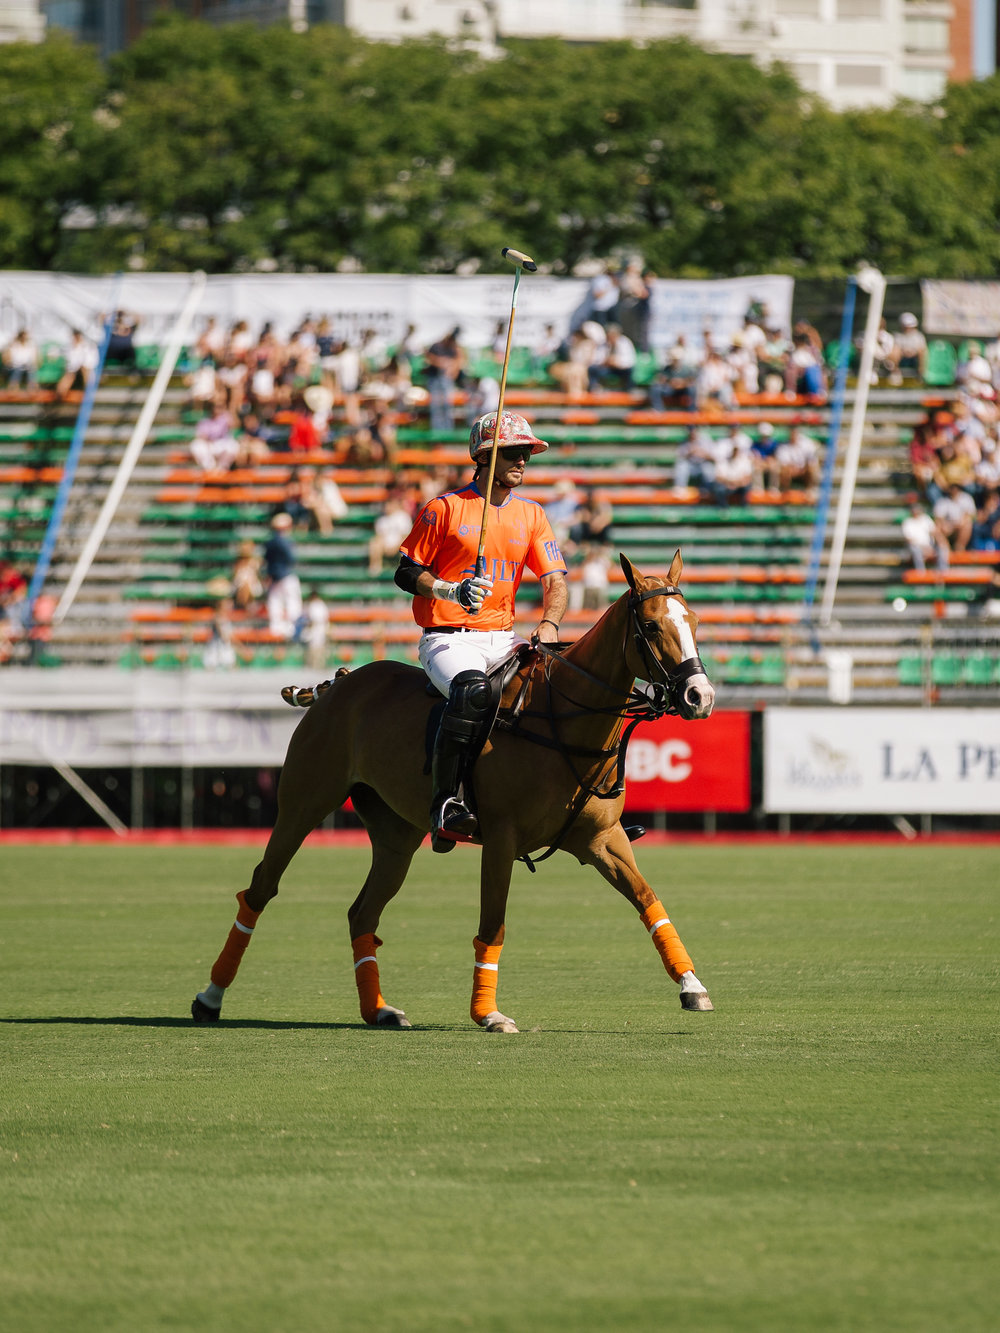 LCB STYLE ARGENTINE OPEN POLO PALERMO8.jpg